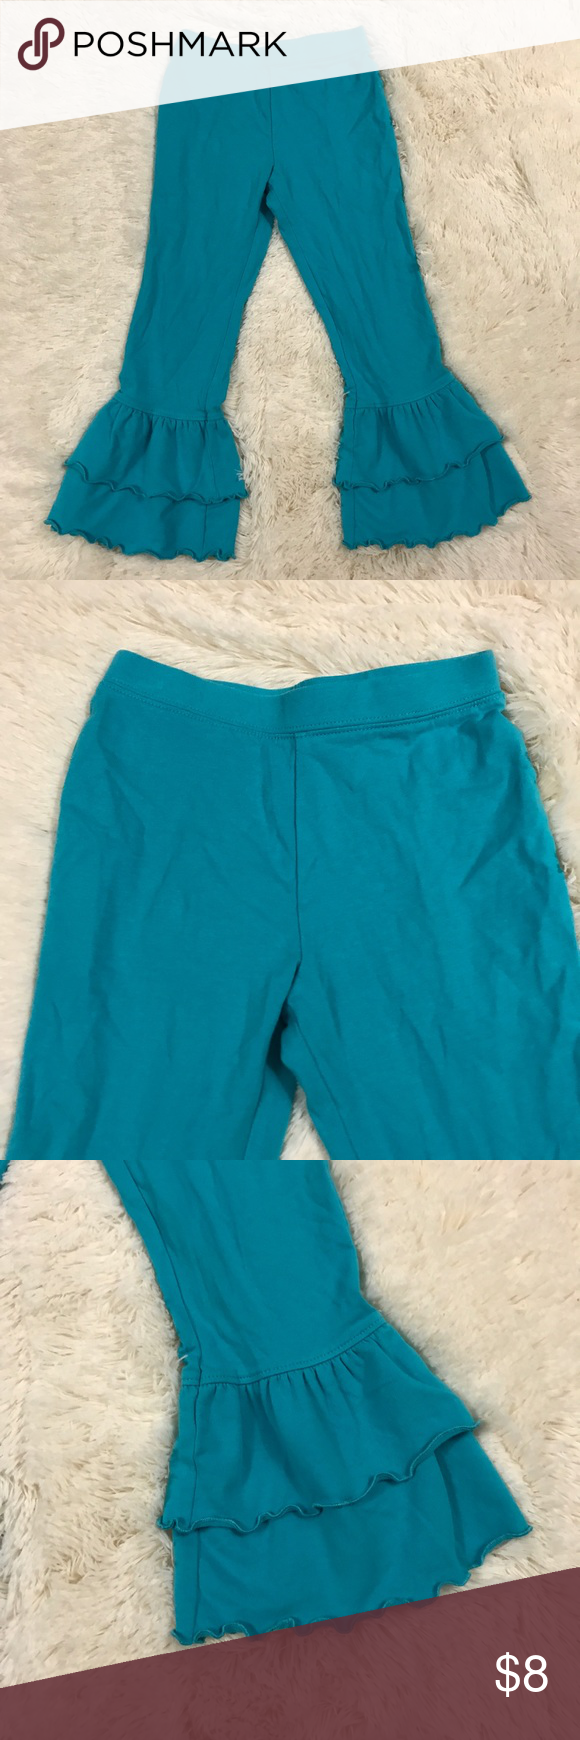 Girls Size 5 Bell Bottom Leggings Girls size 5 blue J. Khaki bell bottom stretchy leggings. 95% cotton, 5% spandex. Bottoms Leggings